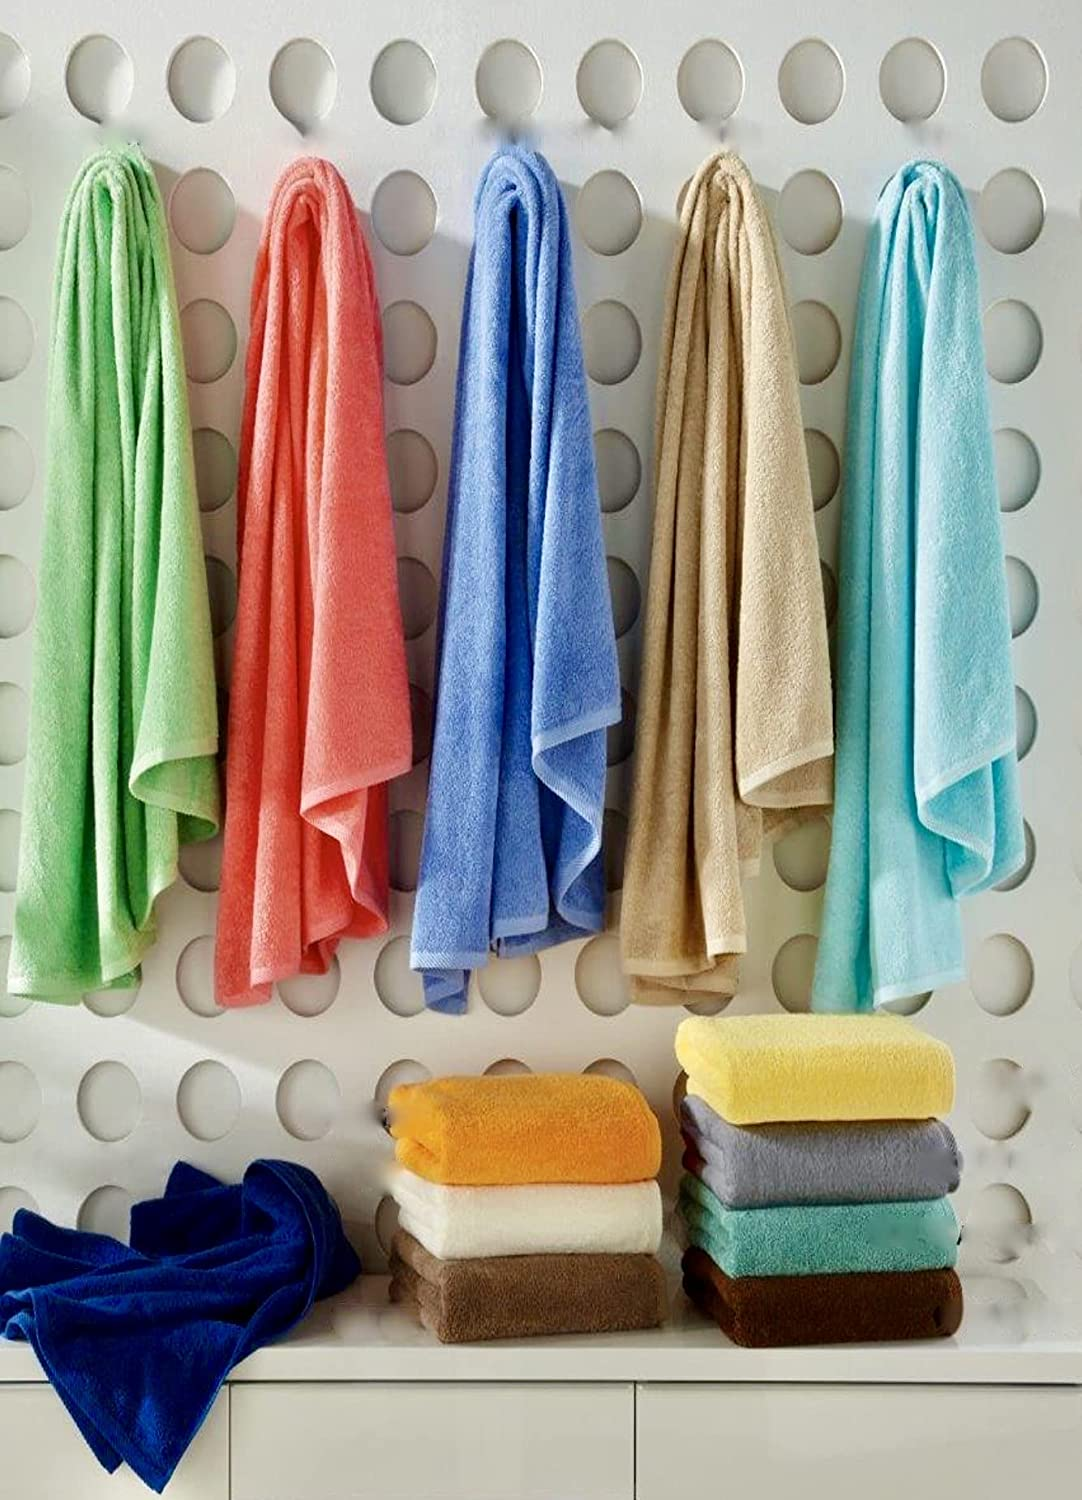 Traditional Collection Hotel Regular discount Cabana Fees free!! Linen Towel